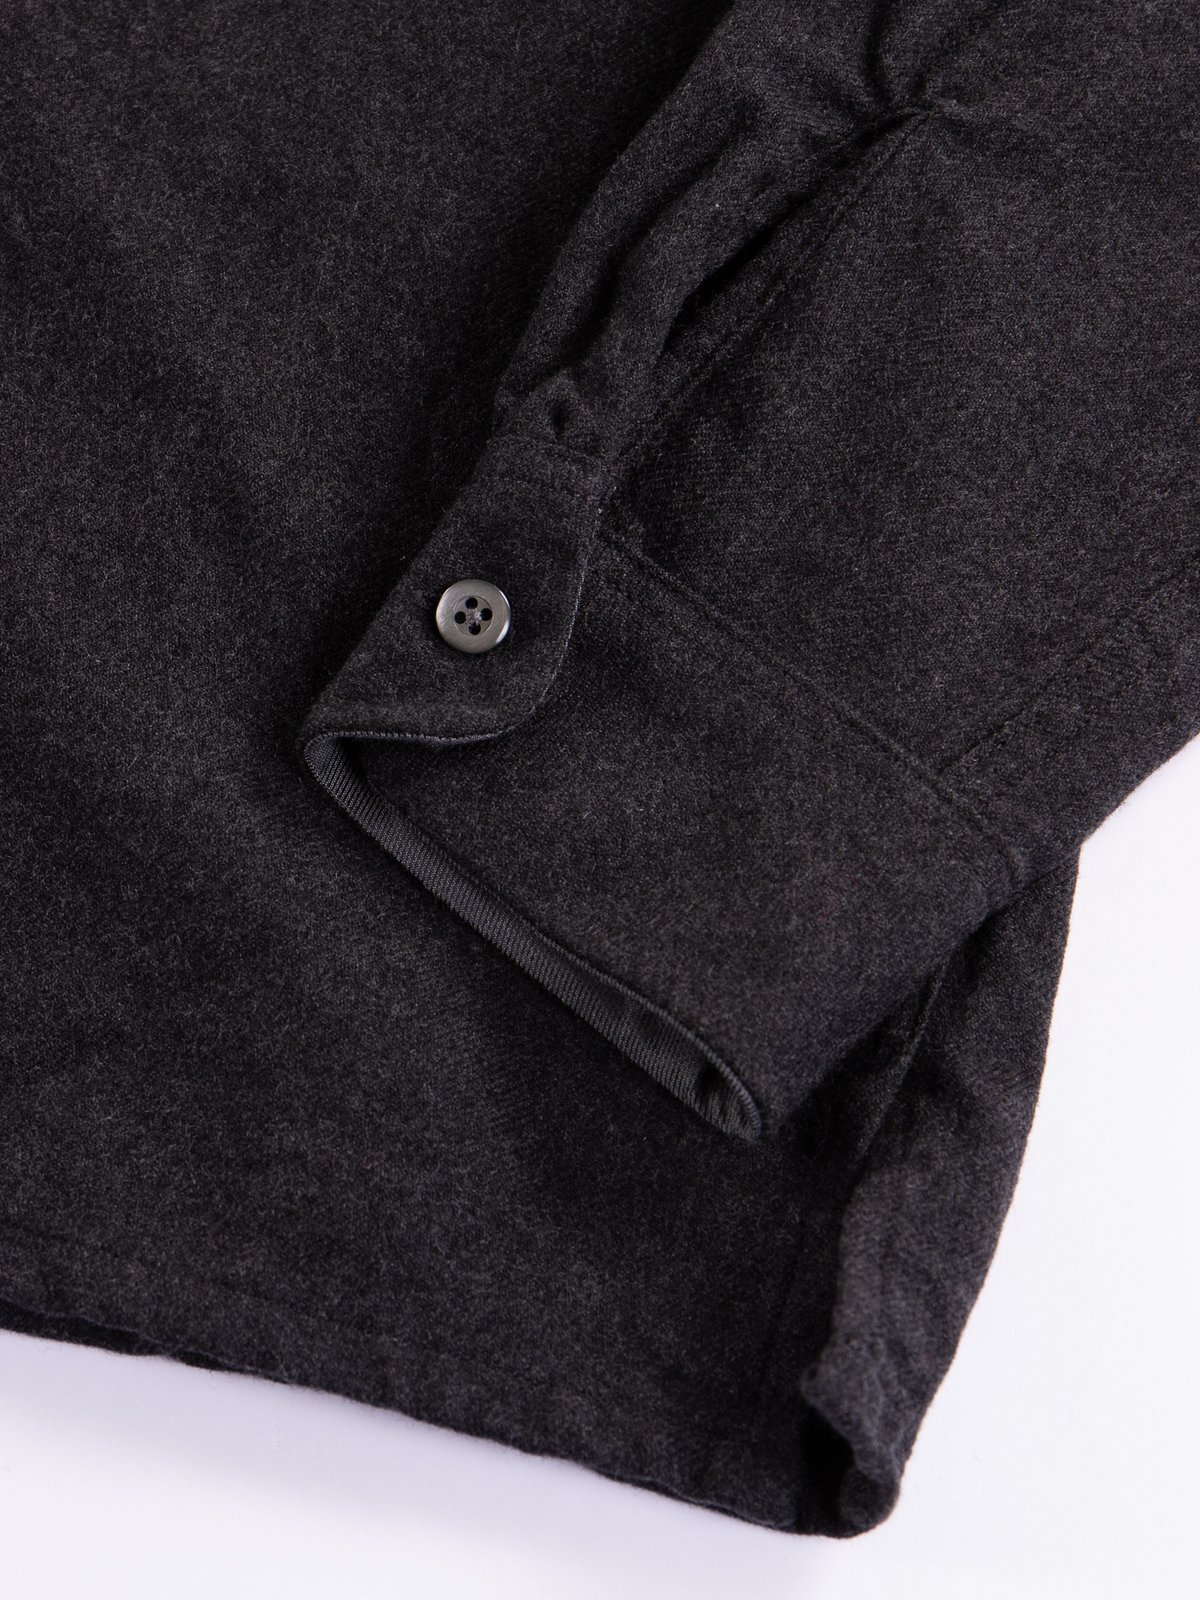 Charcoal Heather Worsted Wool Flannel Classic Shirt - Image 4